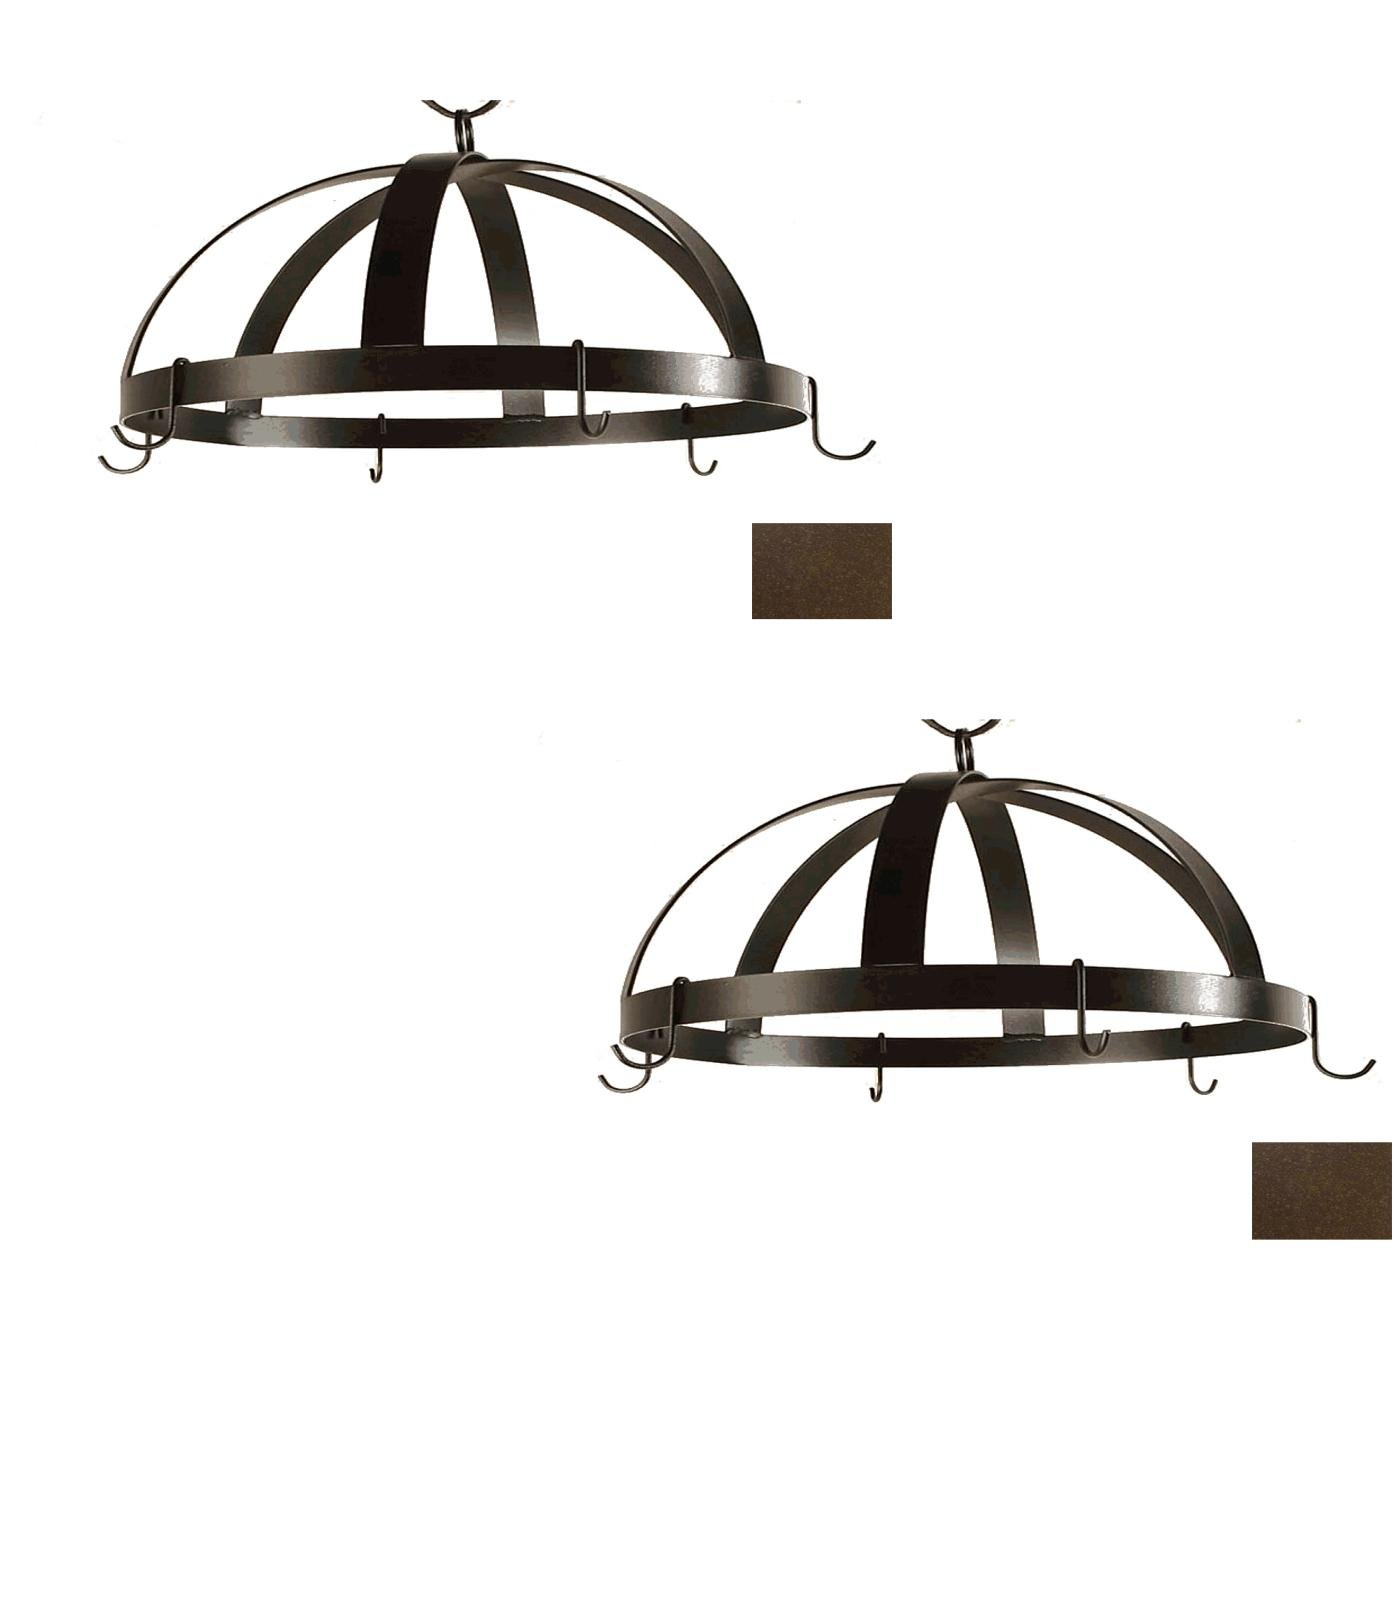 20-in x 20-in Aged Iron Dome Pot Rack - Grace Collection Model - GMC-DPR-20-AI - Set of 2 Gift Bundle by Grace Collection